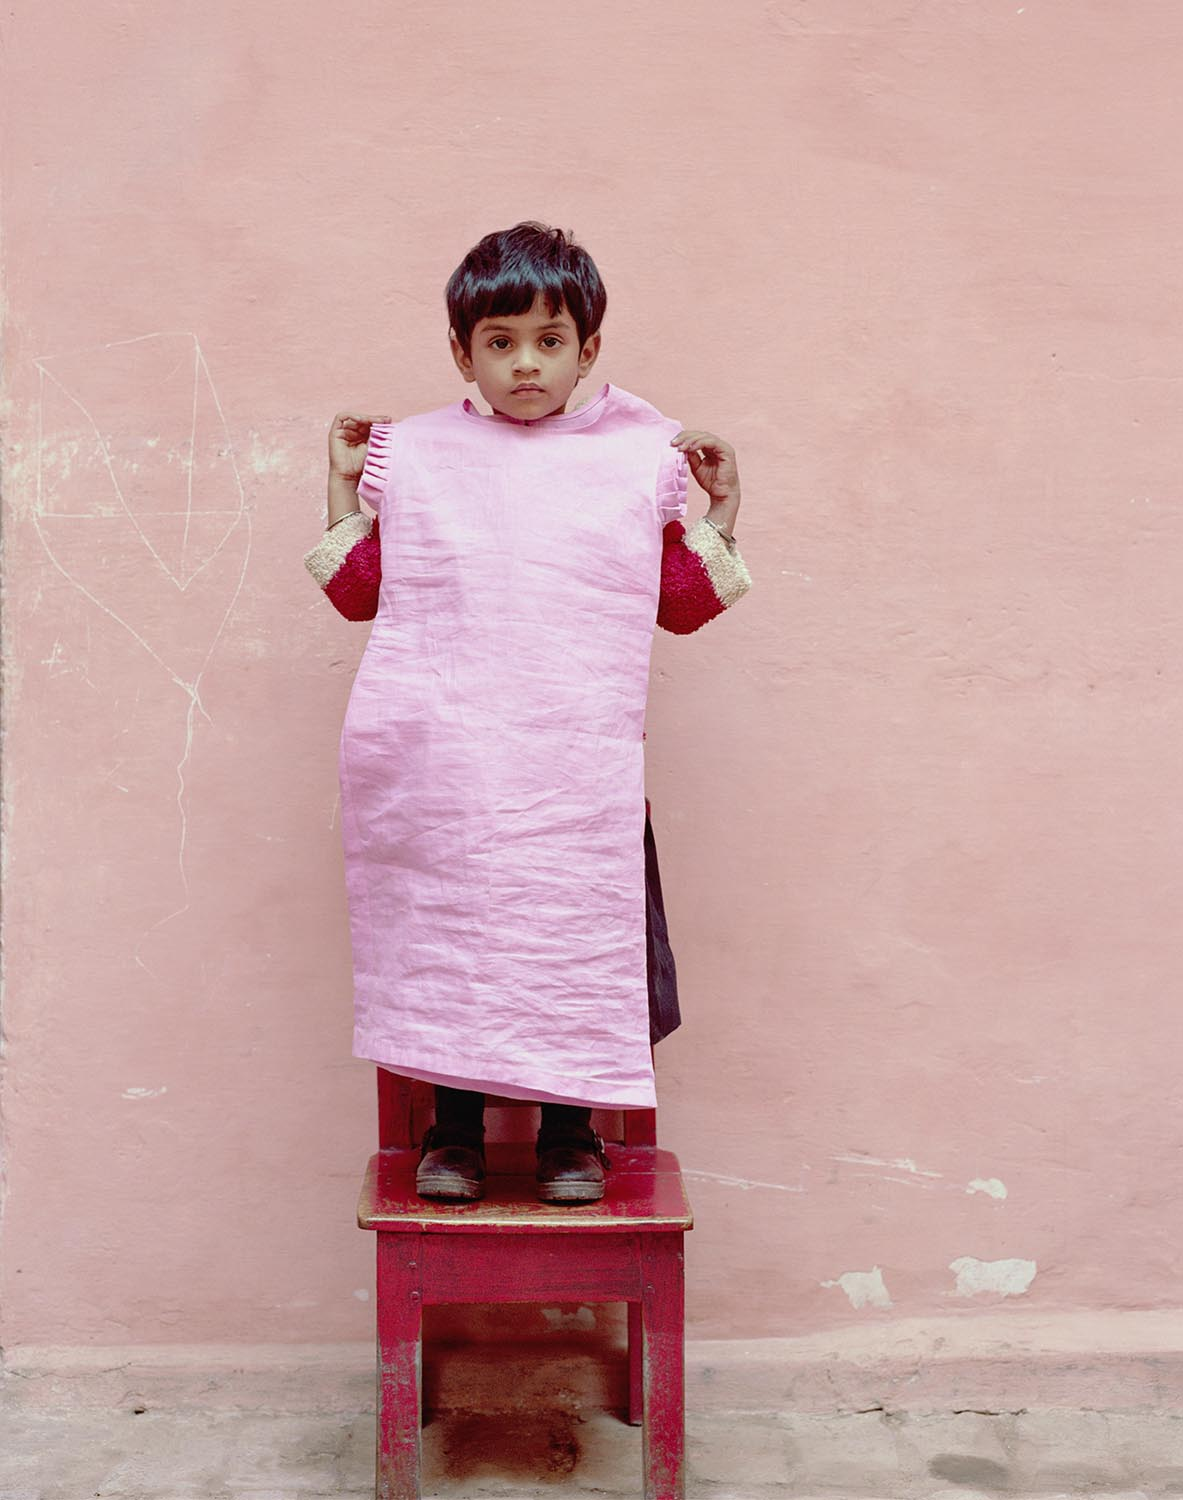 a-pink-dress-untitled-1-2012